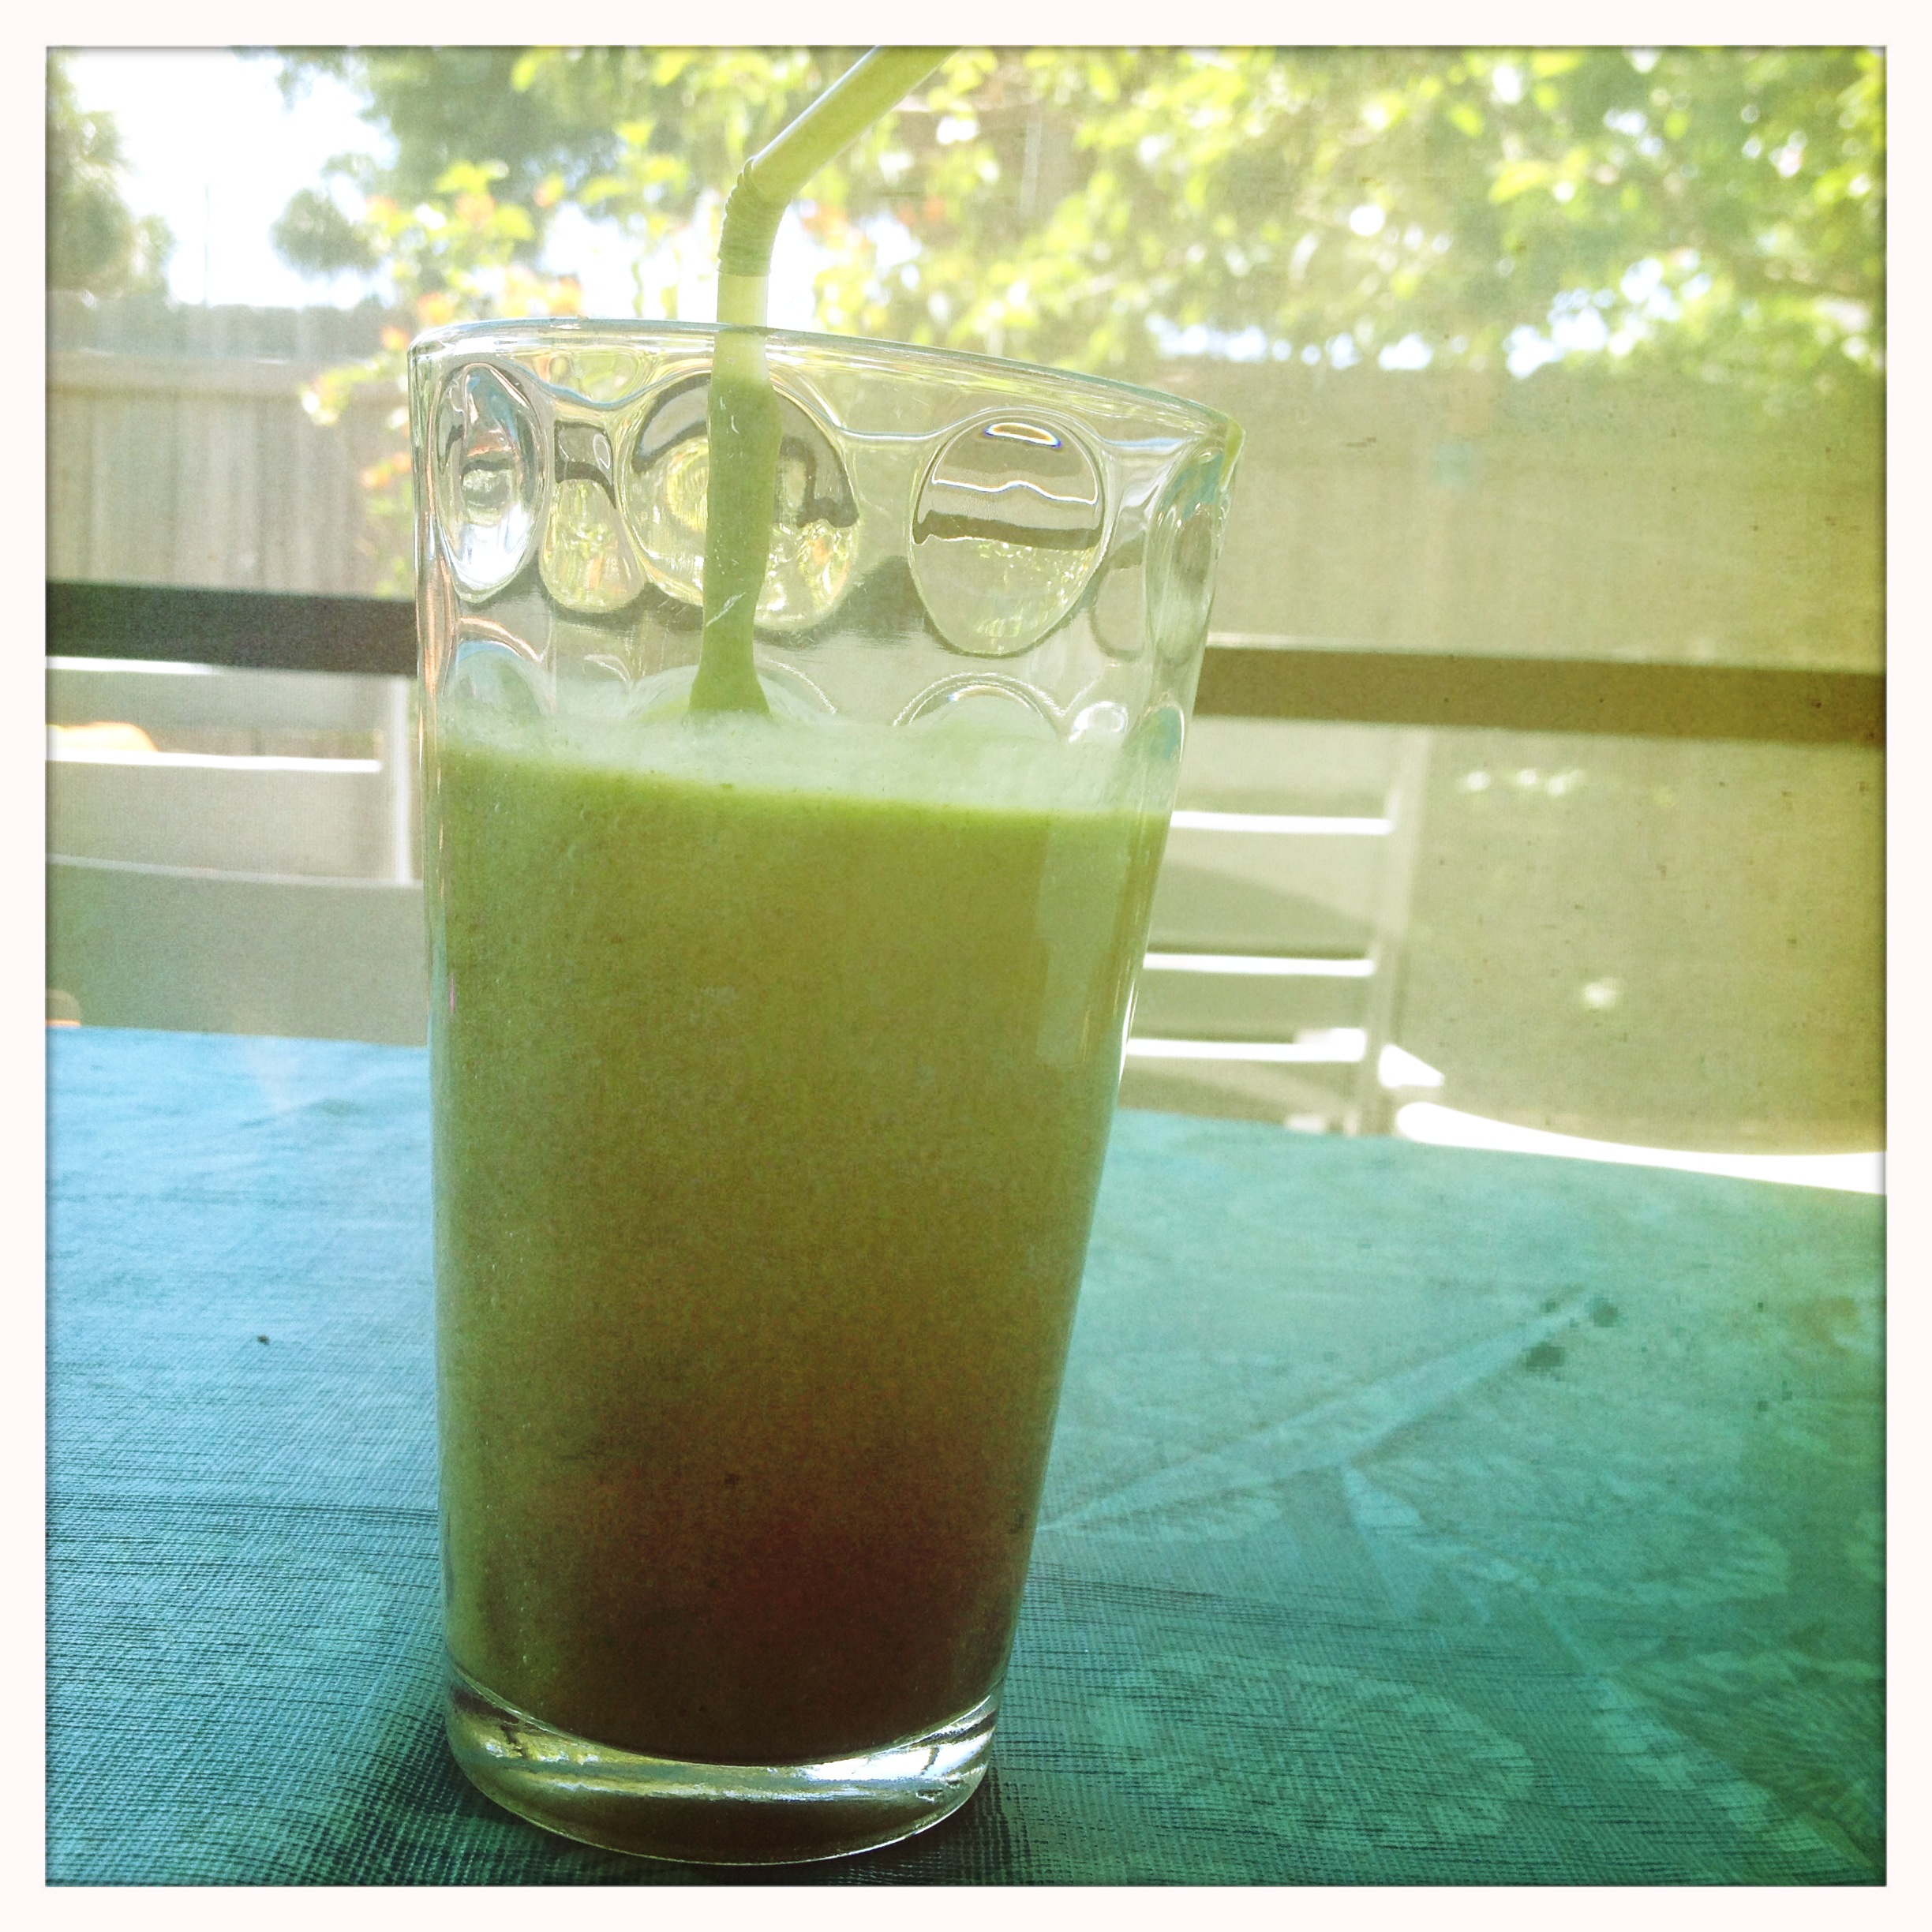 ice cold smoothie to cool things down now before you